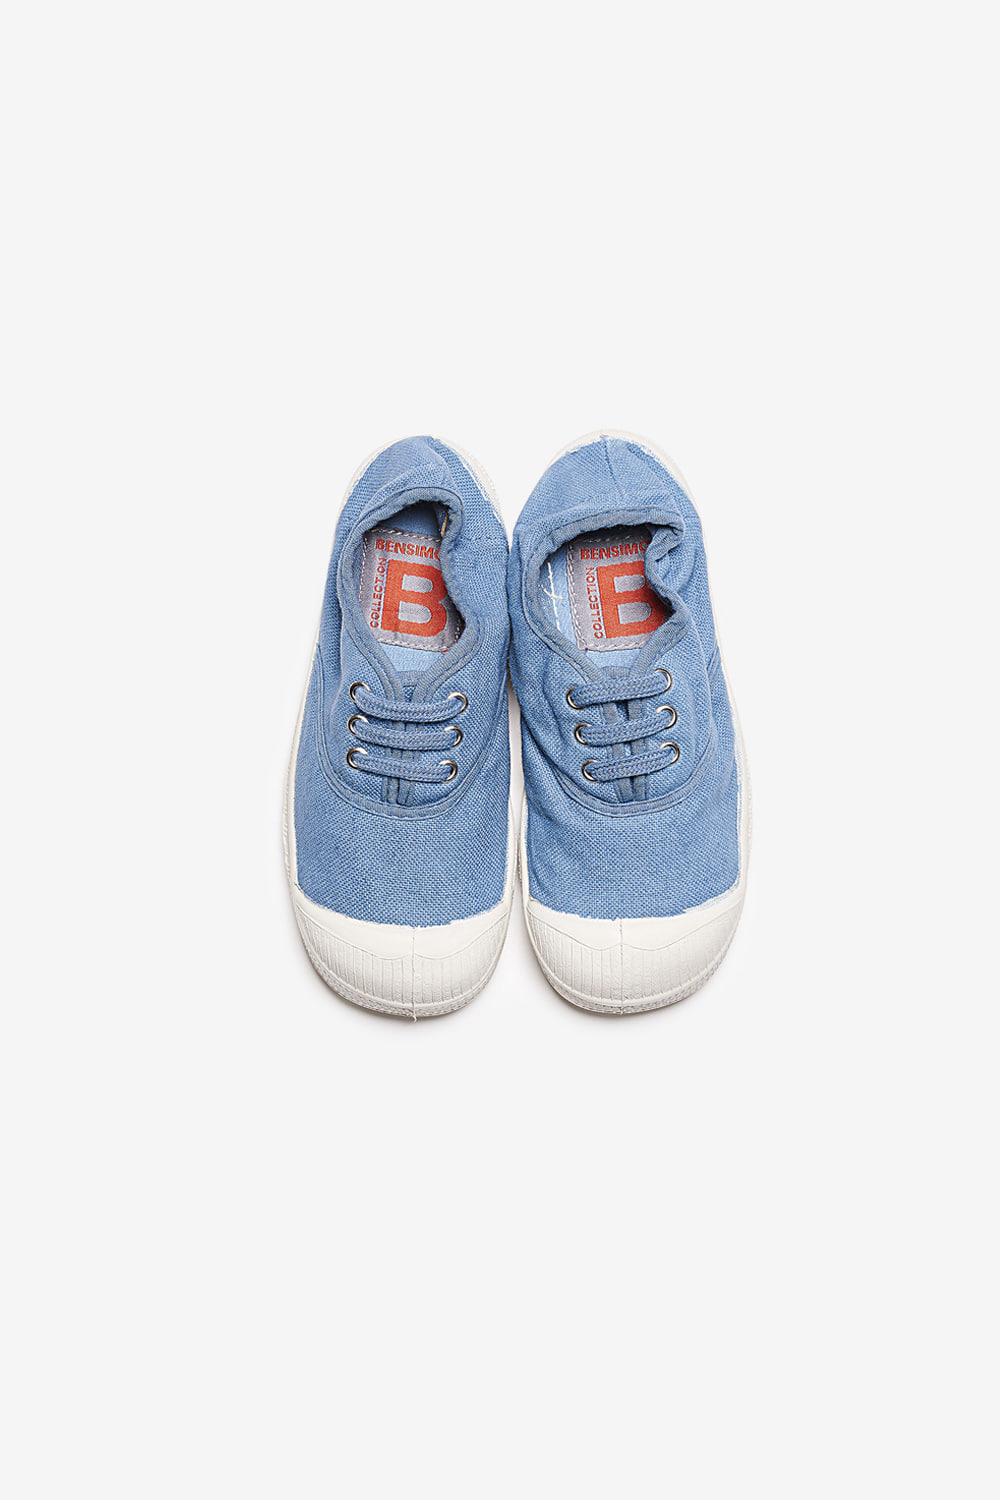 [KID Lacet] Denim BS9SSO300DM